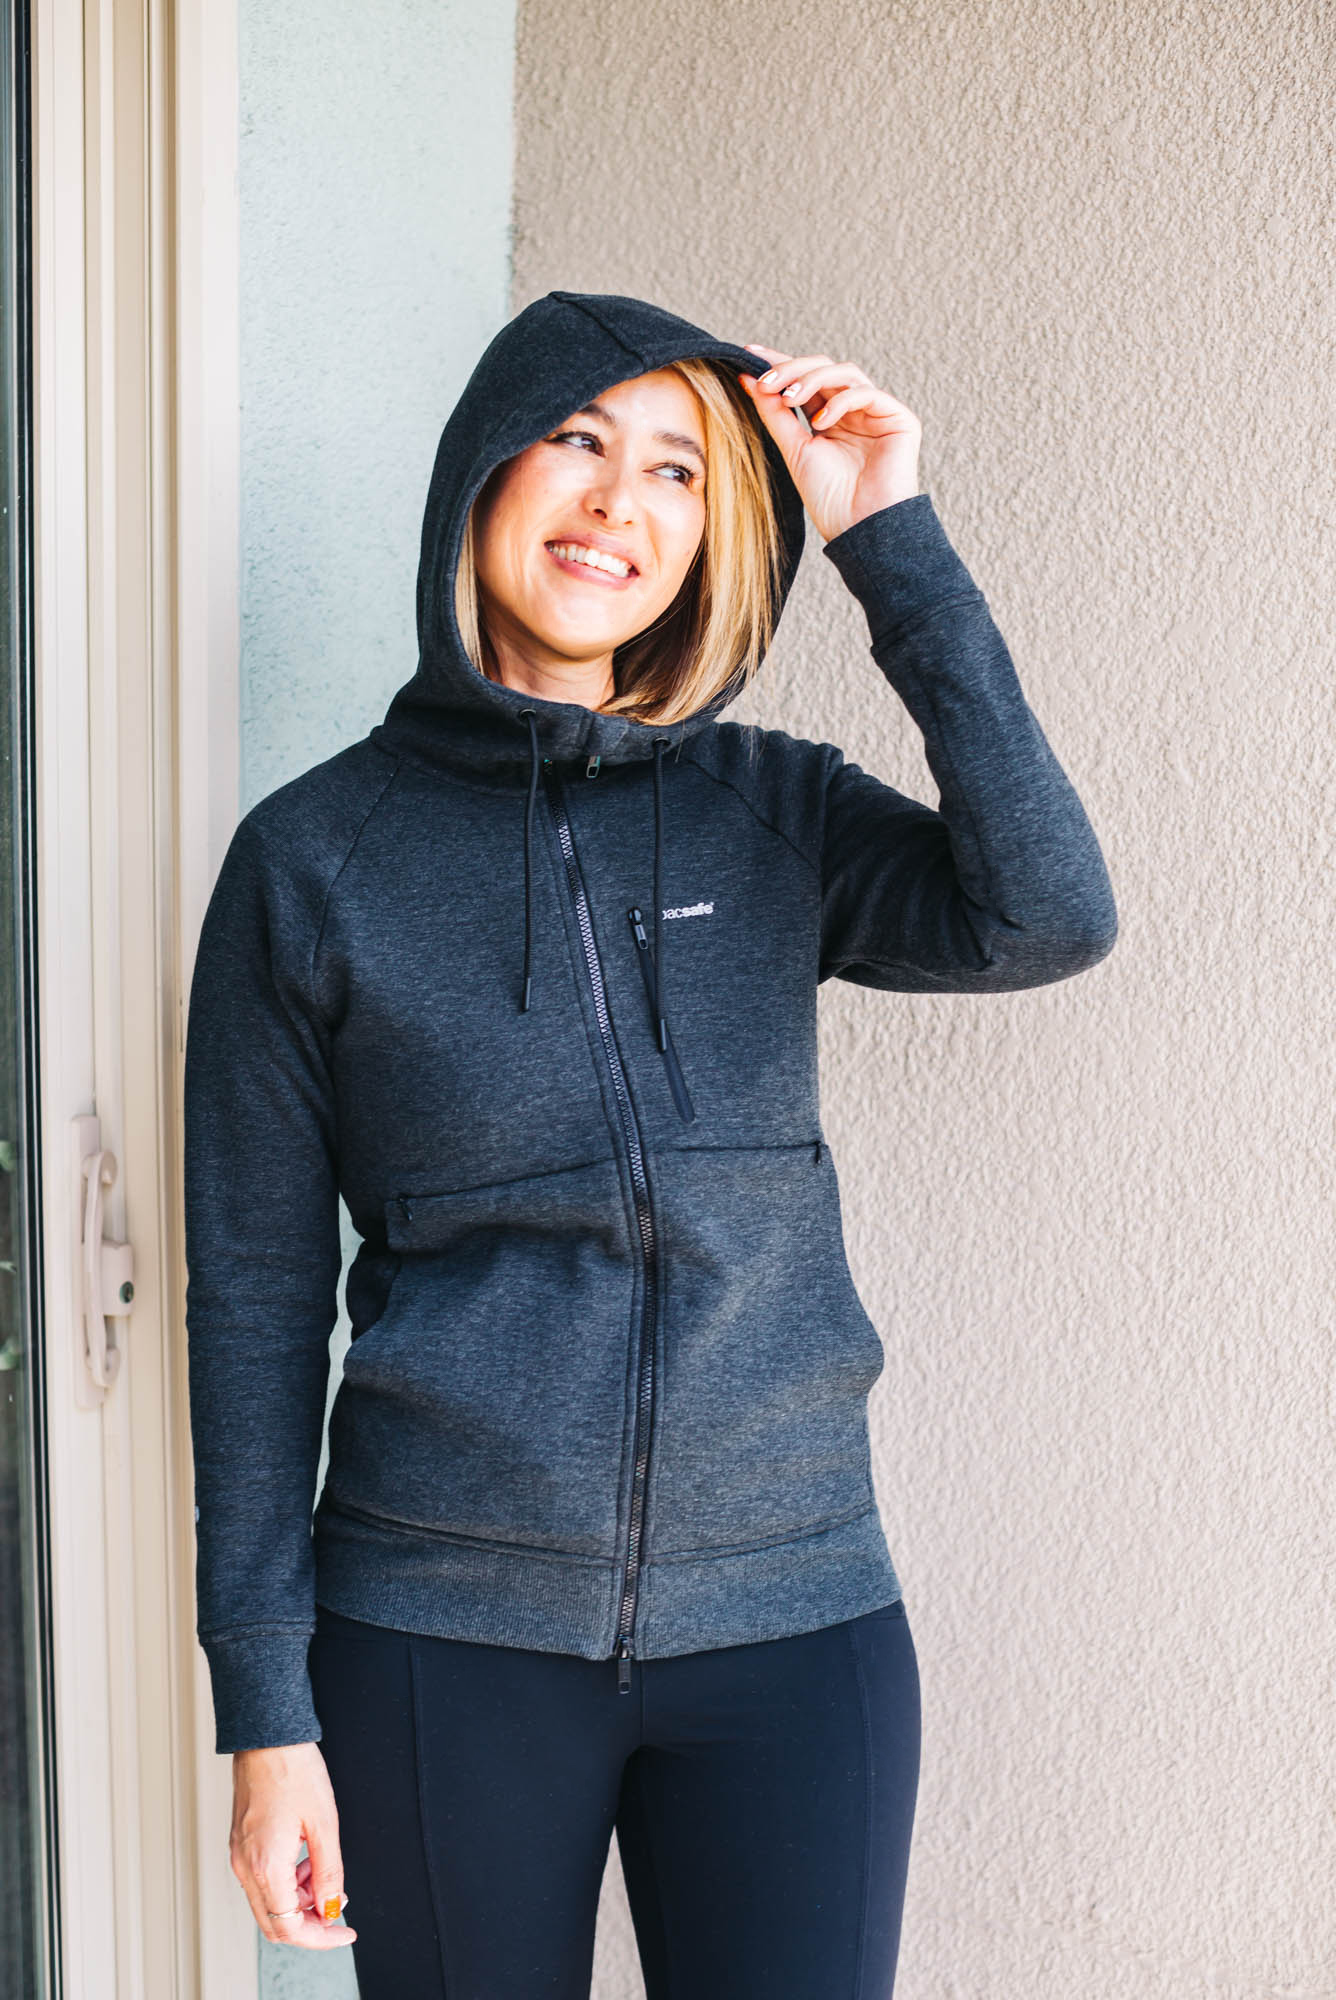 an versatile hoodie that can be used as an eye-mask